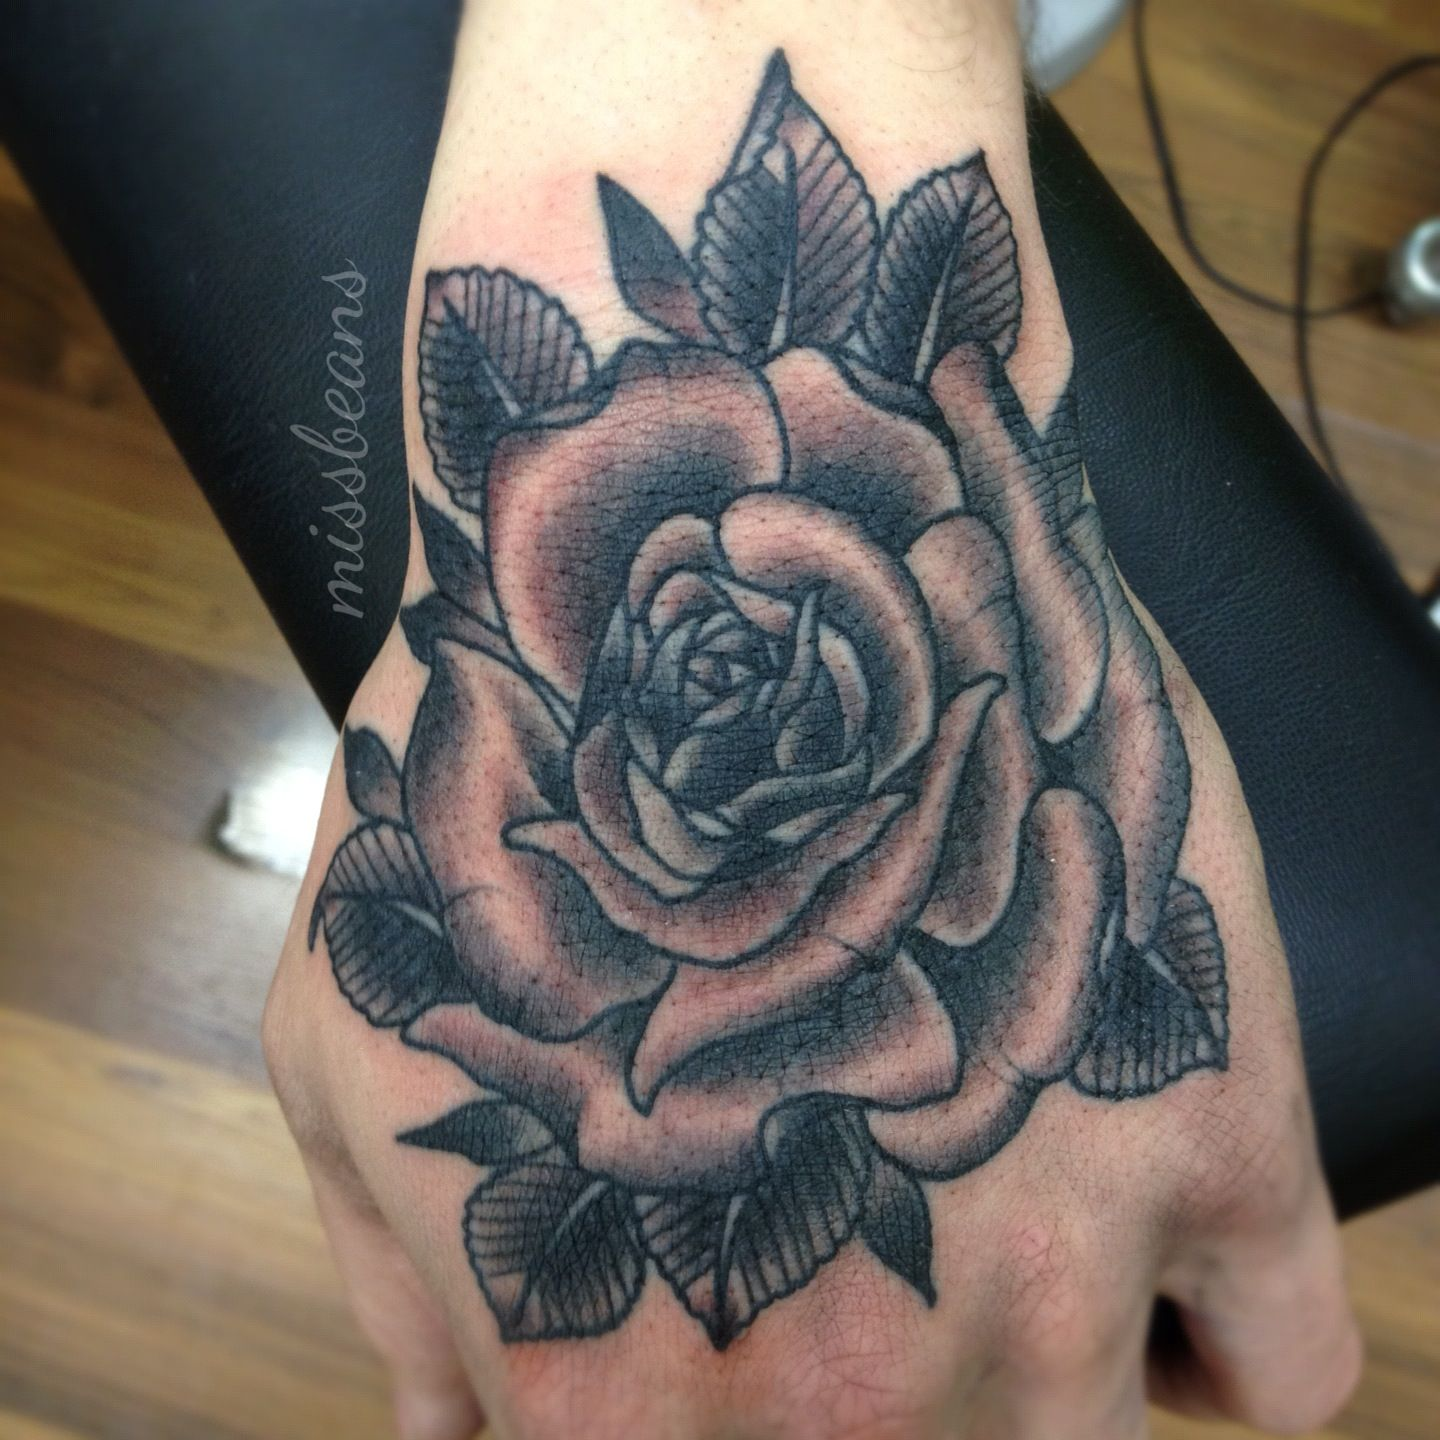 rose hand tattoos images pictures becuo tatuaje en la mano rosa pinterest rose hand. Black Bedroom Furniture Sets. Home Design Ideas